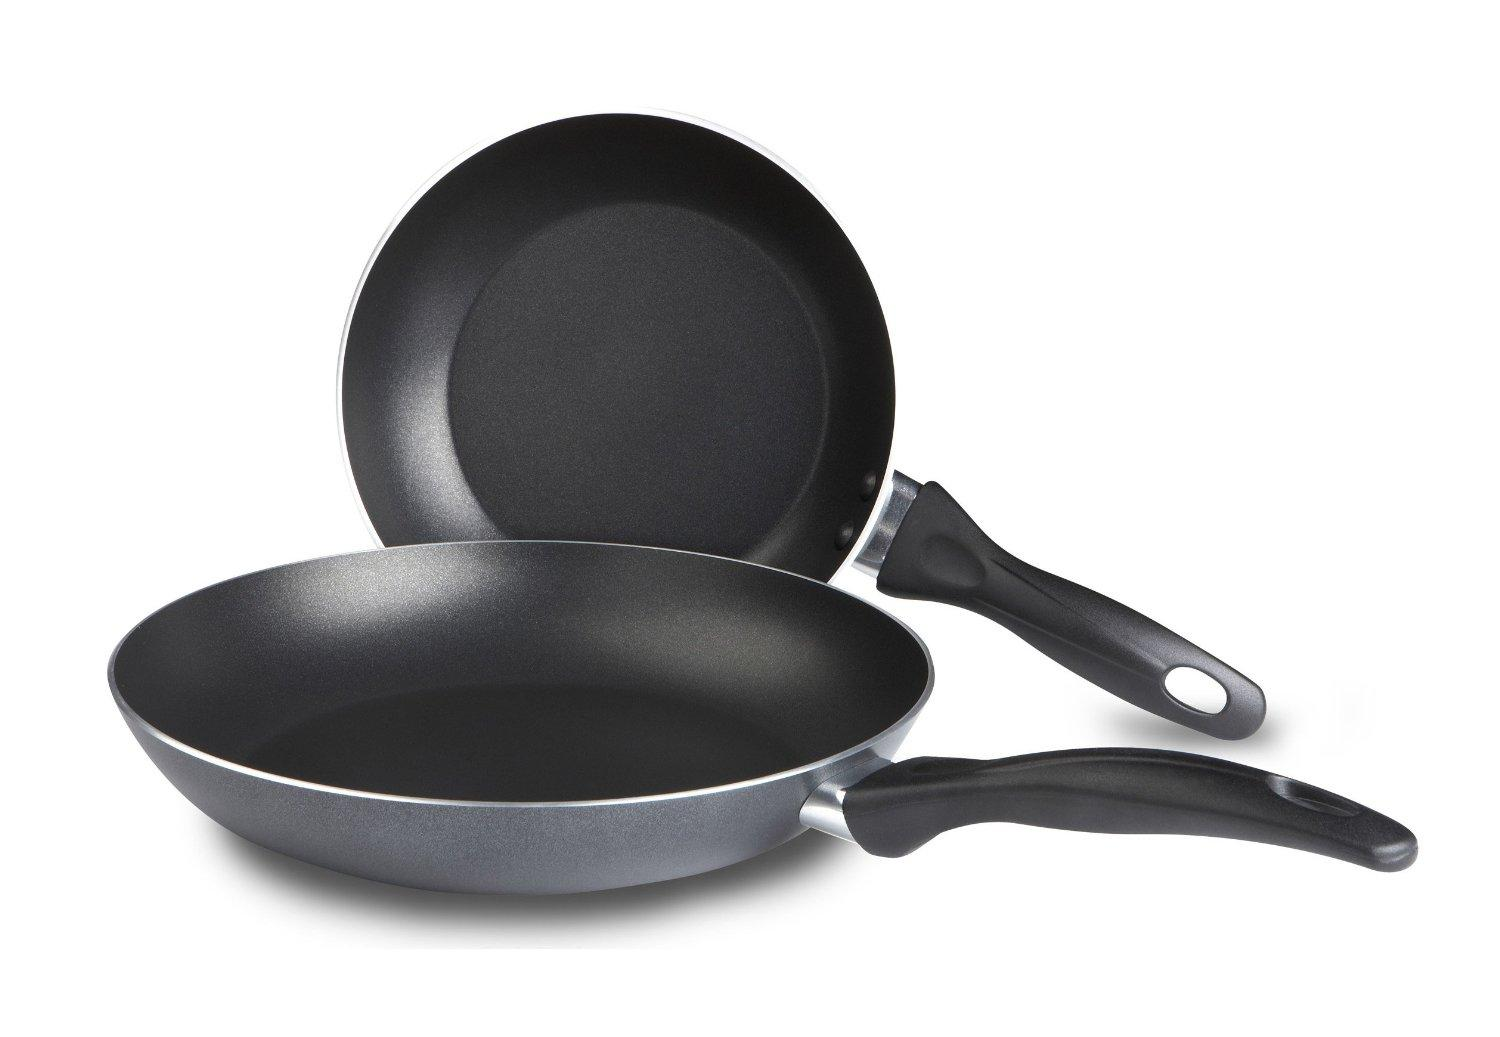 T-fal A857S2 Specialty Nonstick Dishwasher Safe PFOA Free 8-Inch and 10-Inch Fry Pan